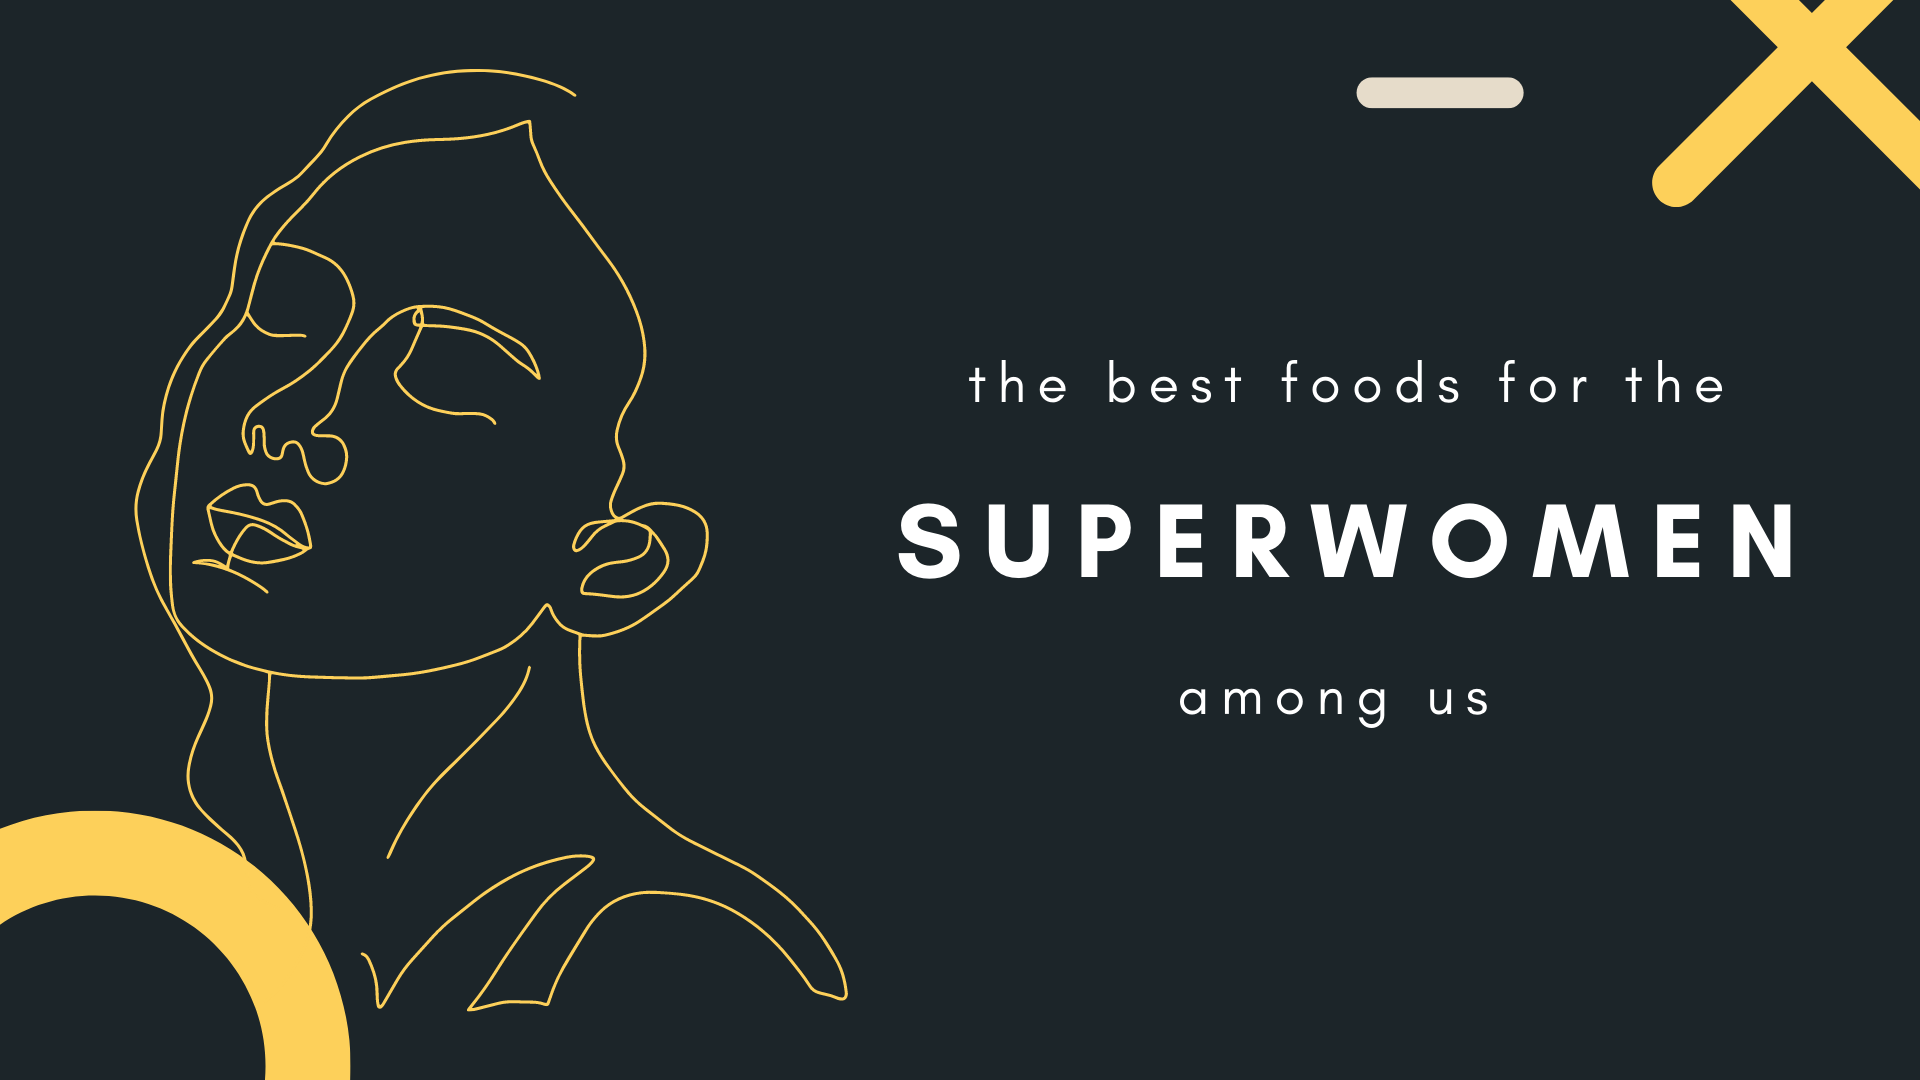 the best foods for the superwomen among us